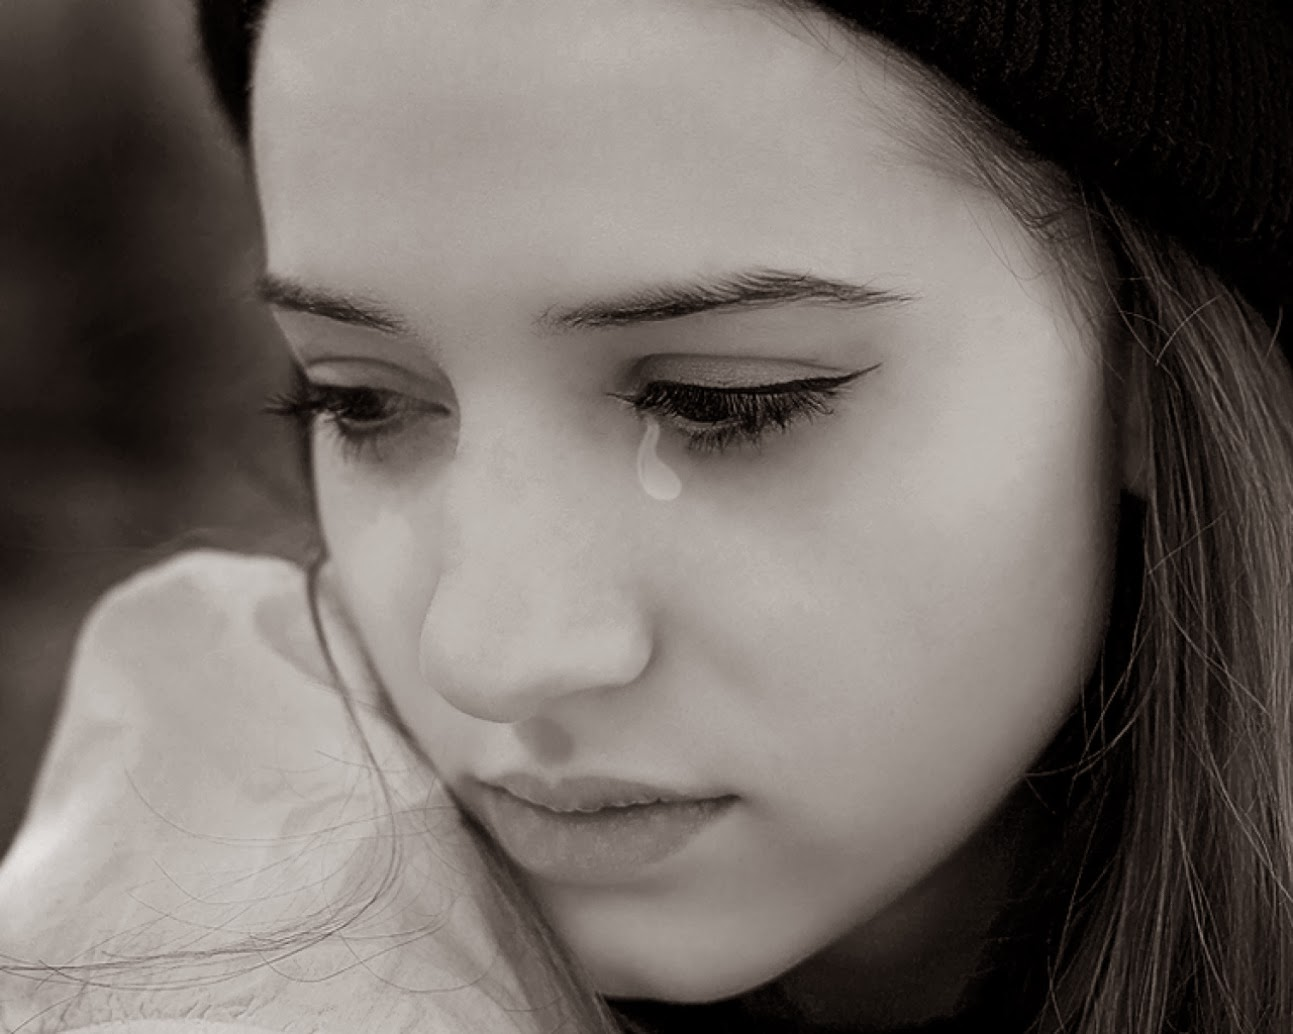 Free wallpapers latest walpapers pictures love - Sad girl pictures crying ...